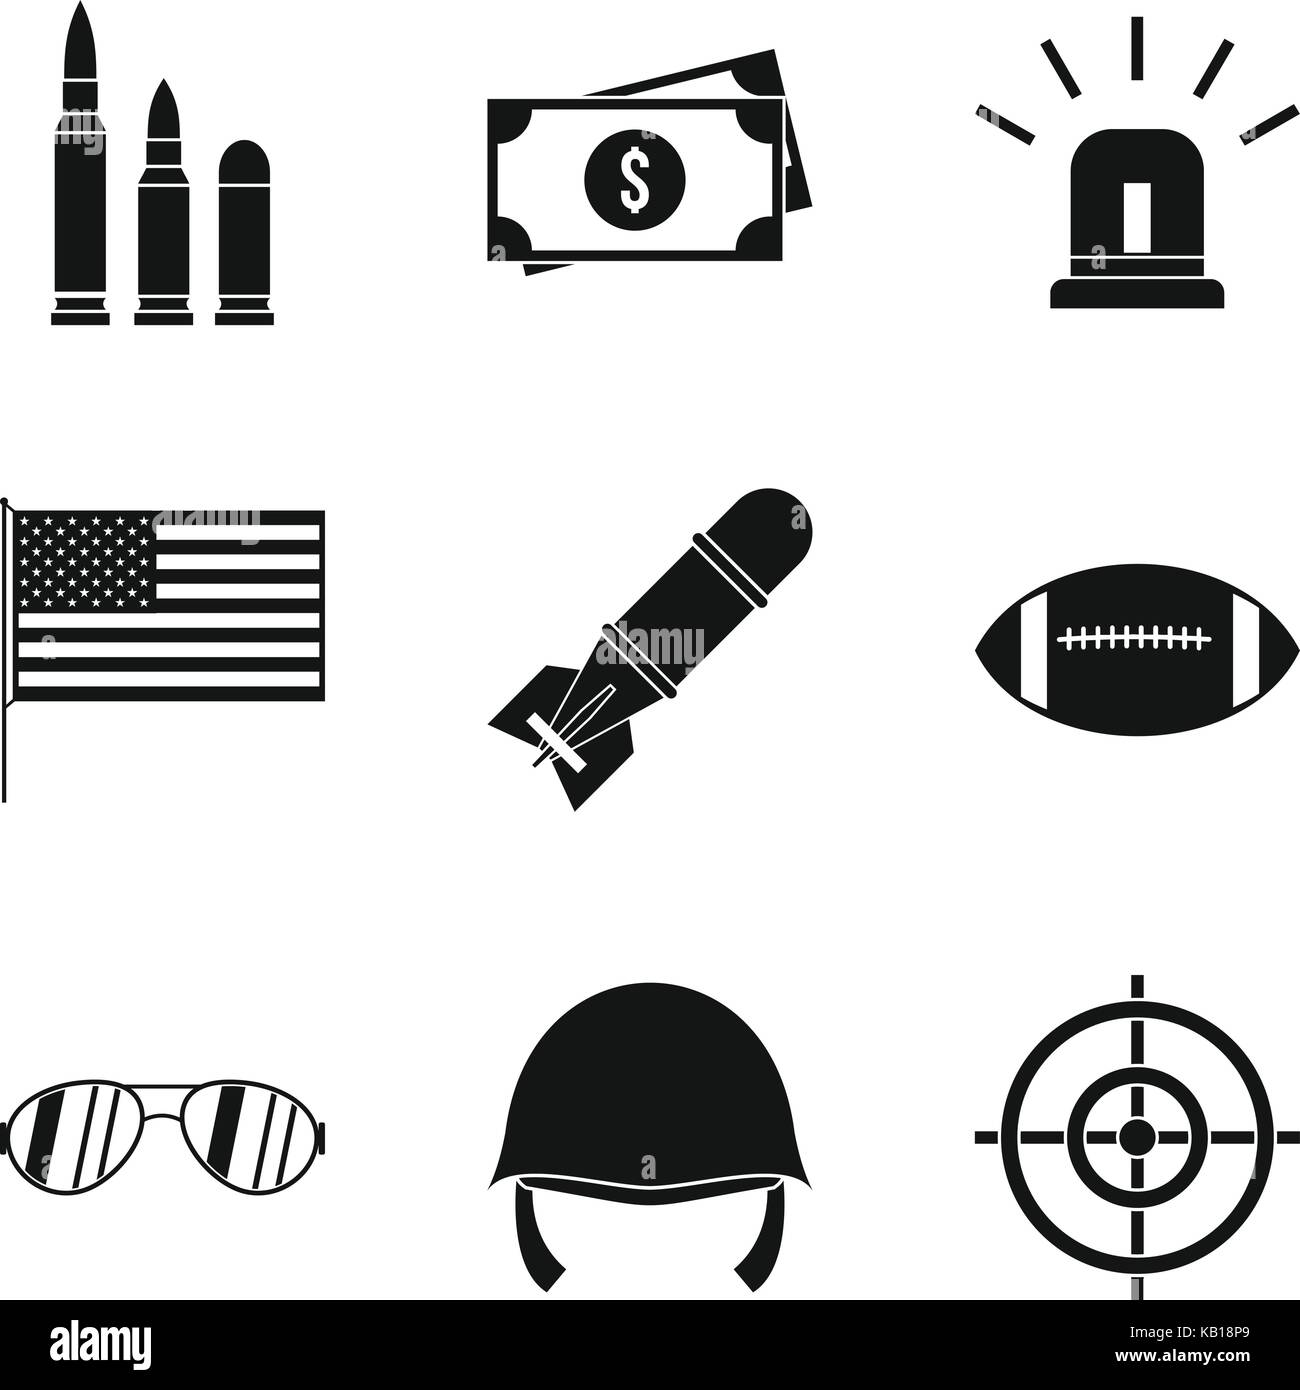 Explosive icons set, simple style - Stock Image